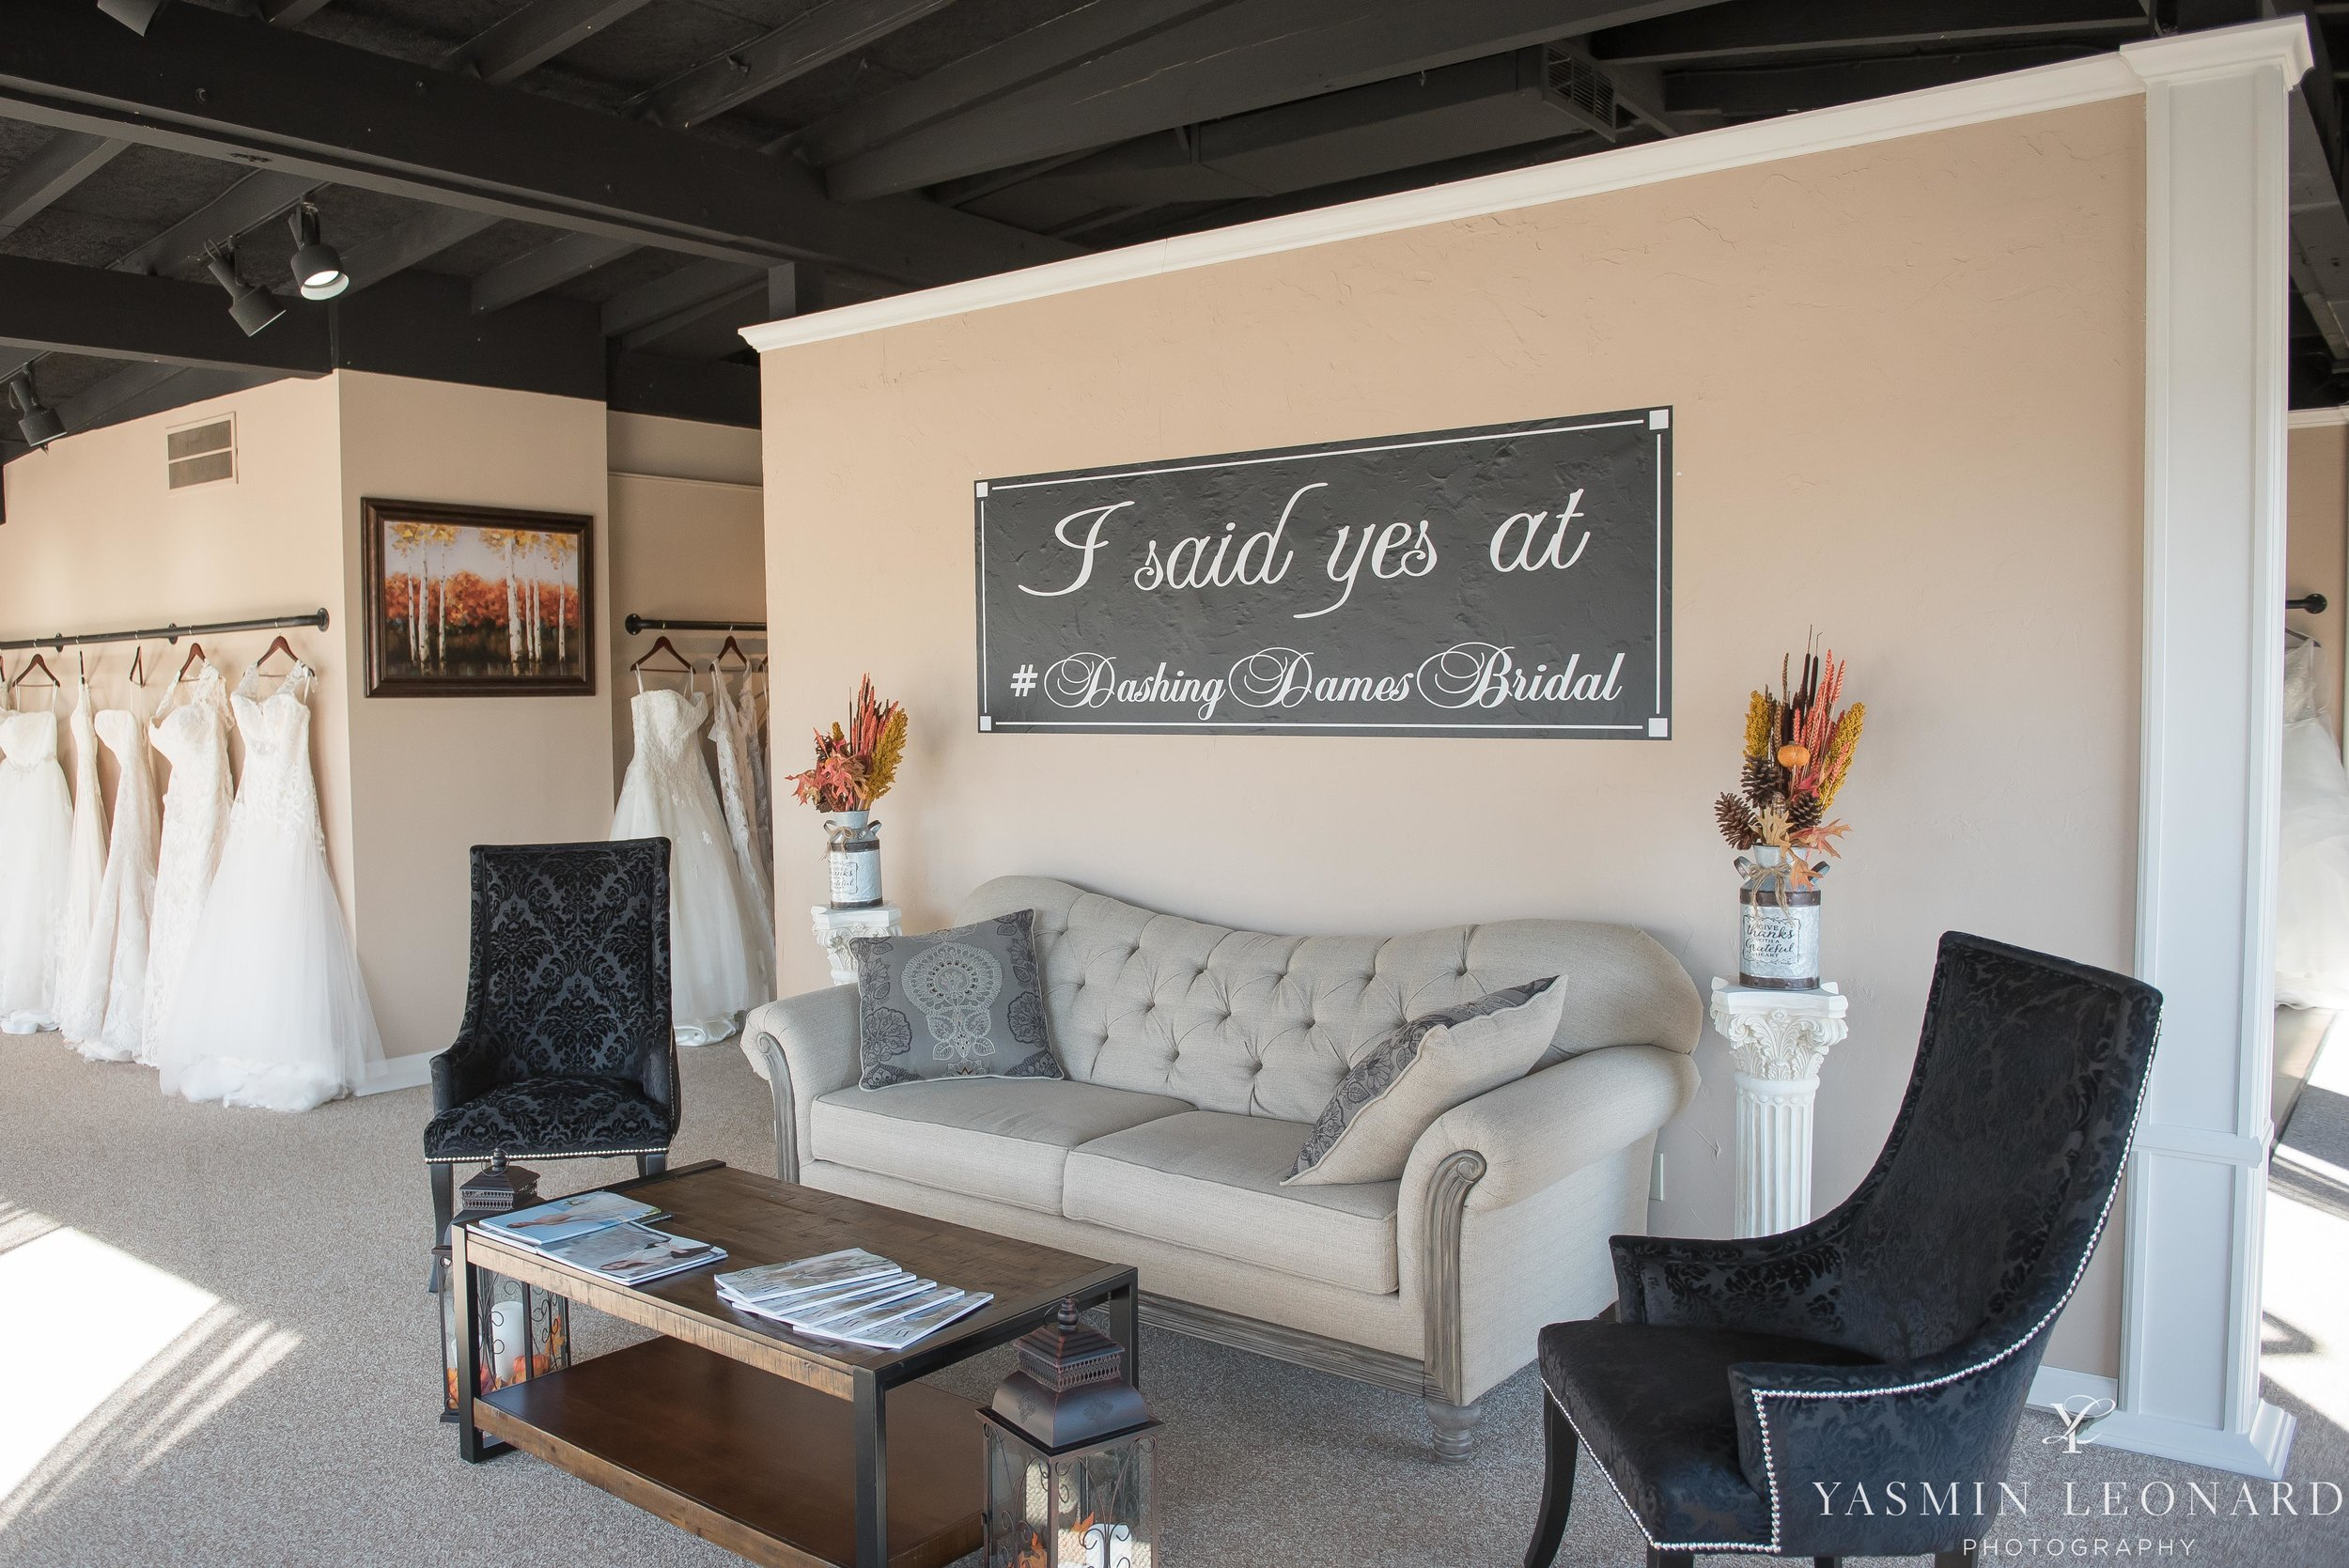 Dashing Dames Bridal and Boutique - High Point Bridal Shop - Bridal Store in High Point - Yasmin Leonard Photography-7.jpg